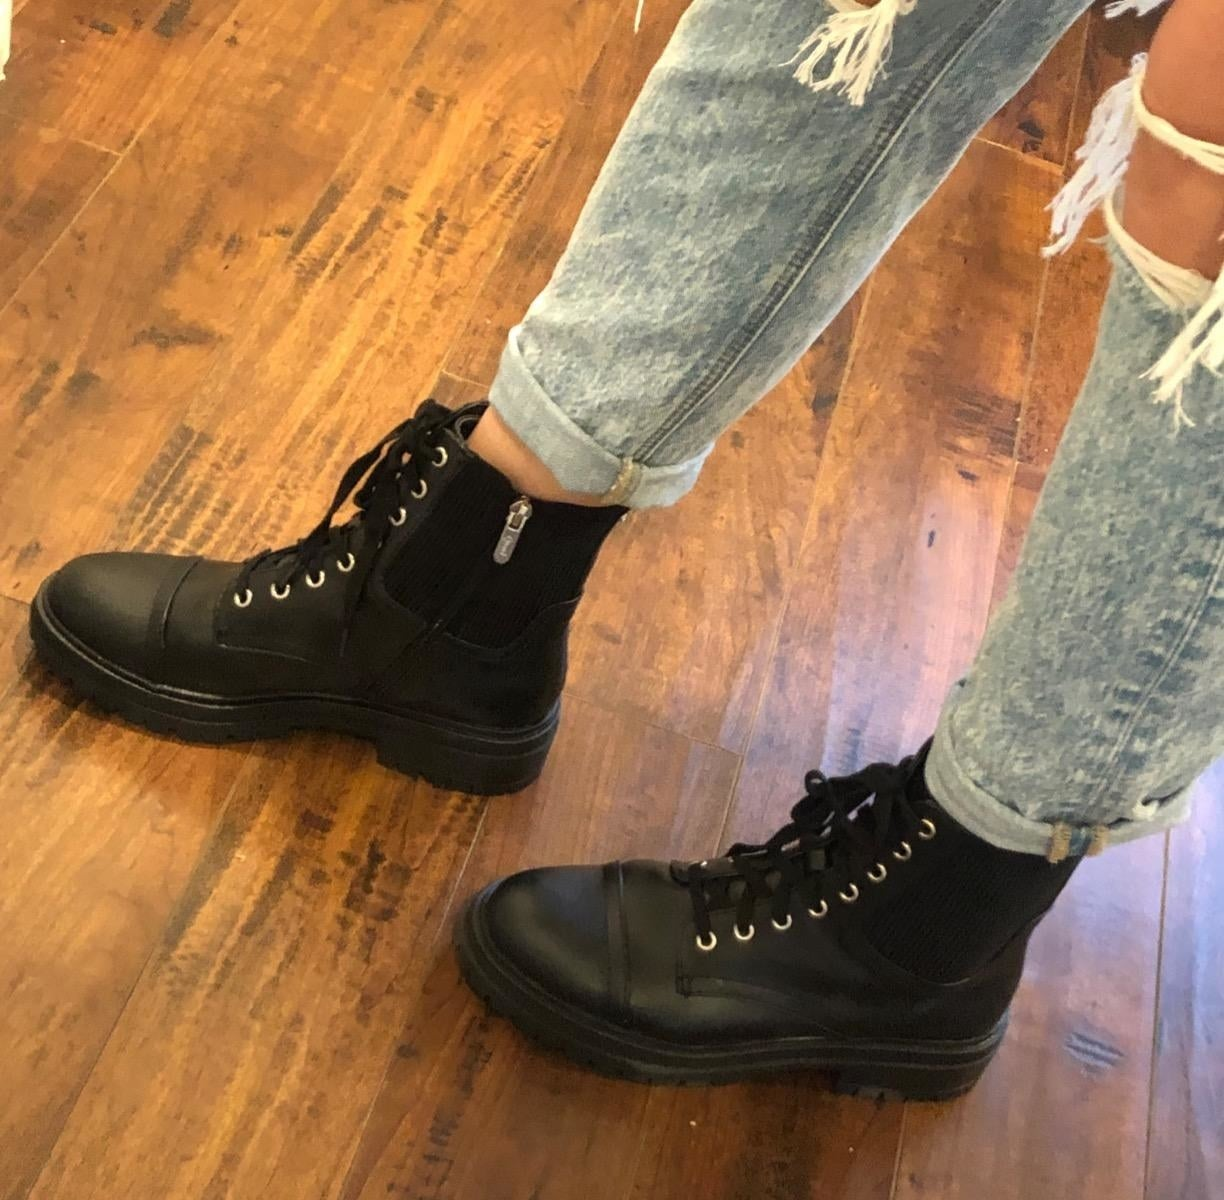 a reviewer wearing the combat boots